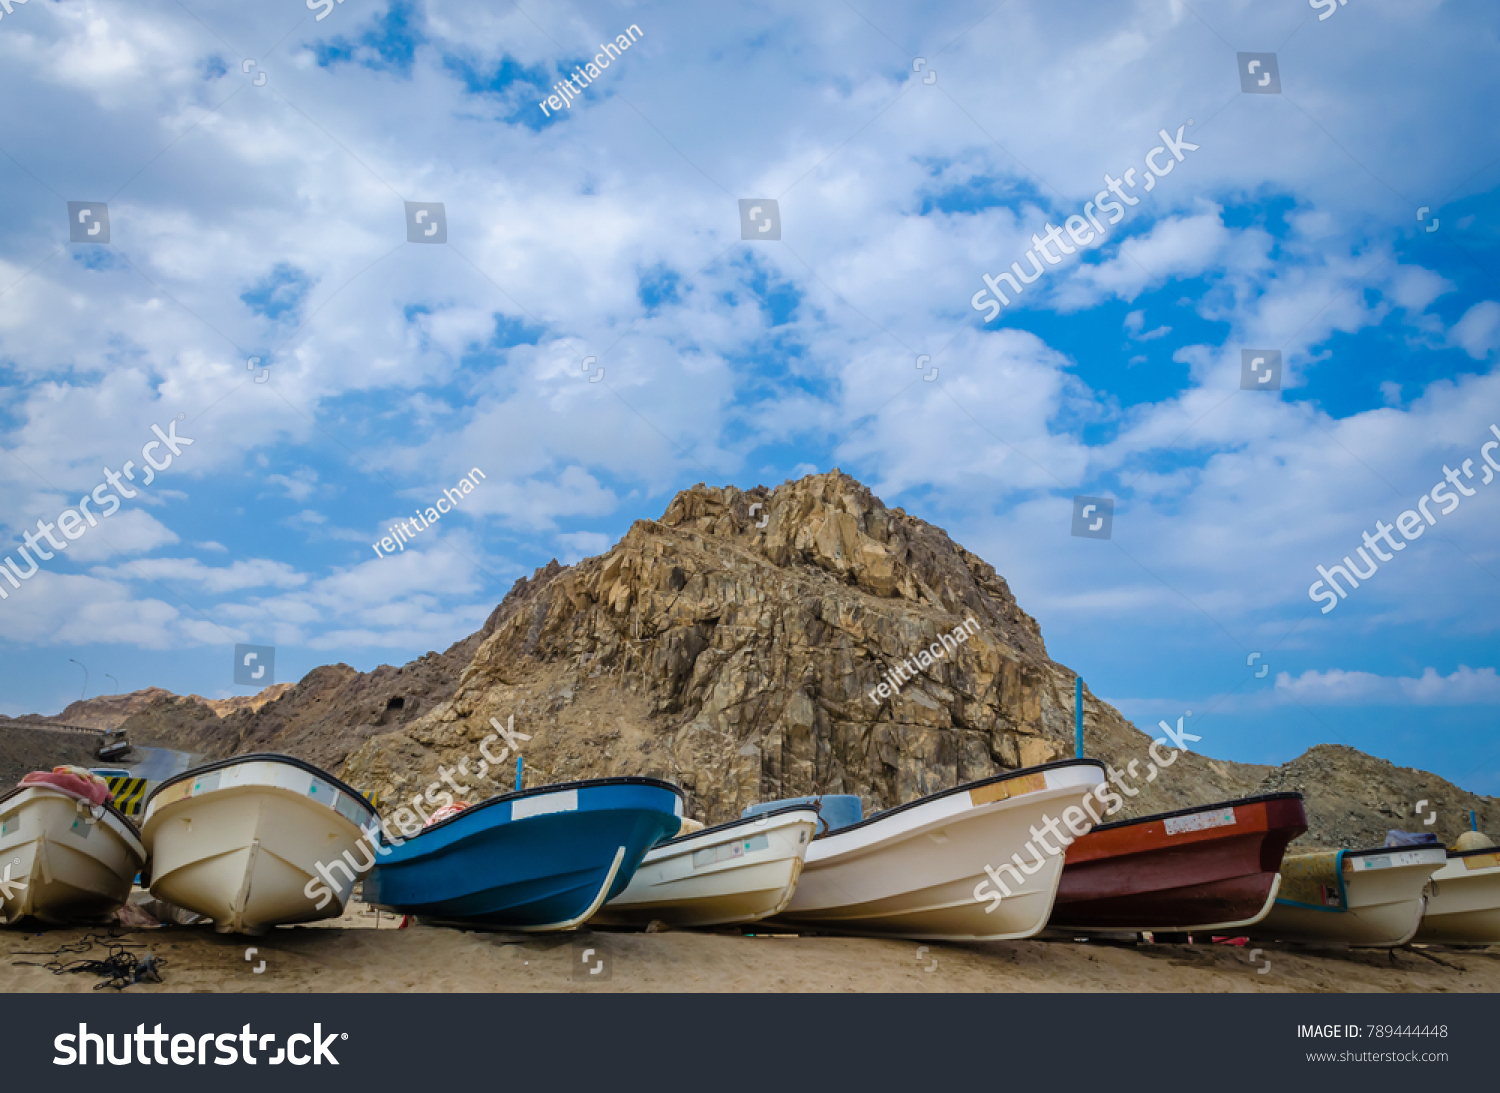 Fishing boats on the beach with a hill and a cloudy sky in the background.